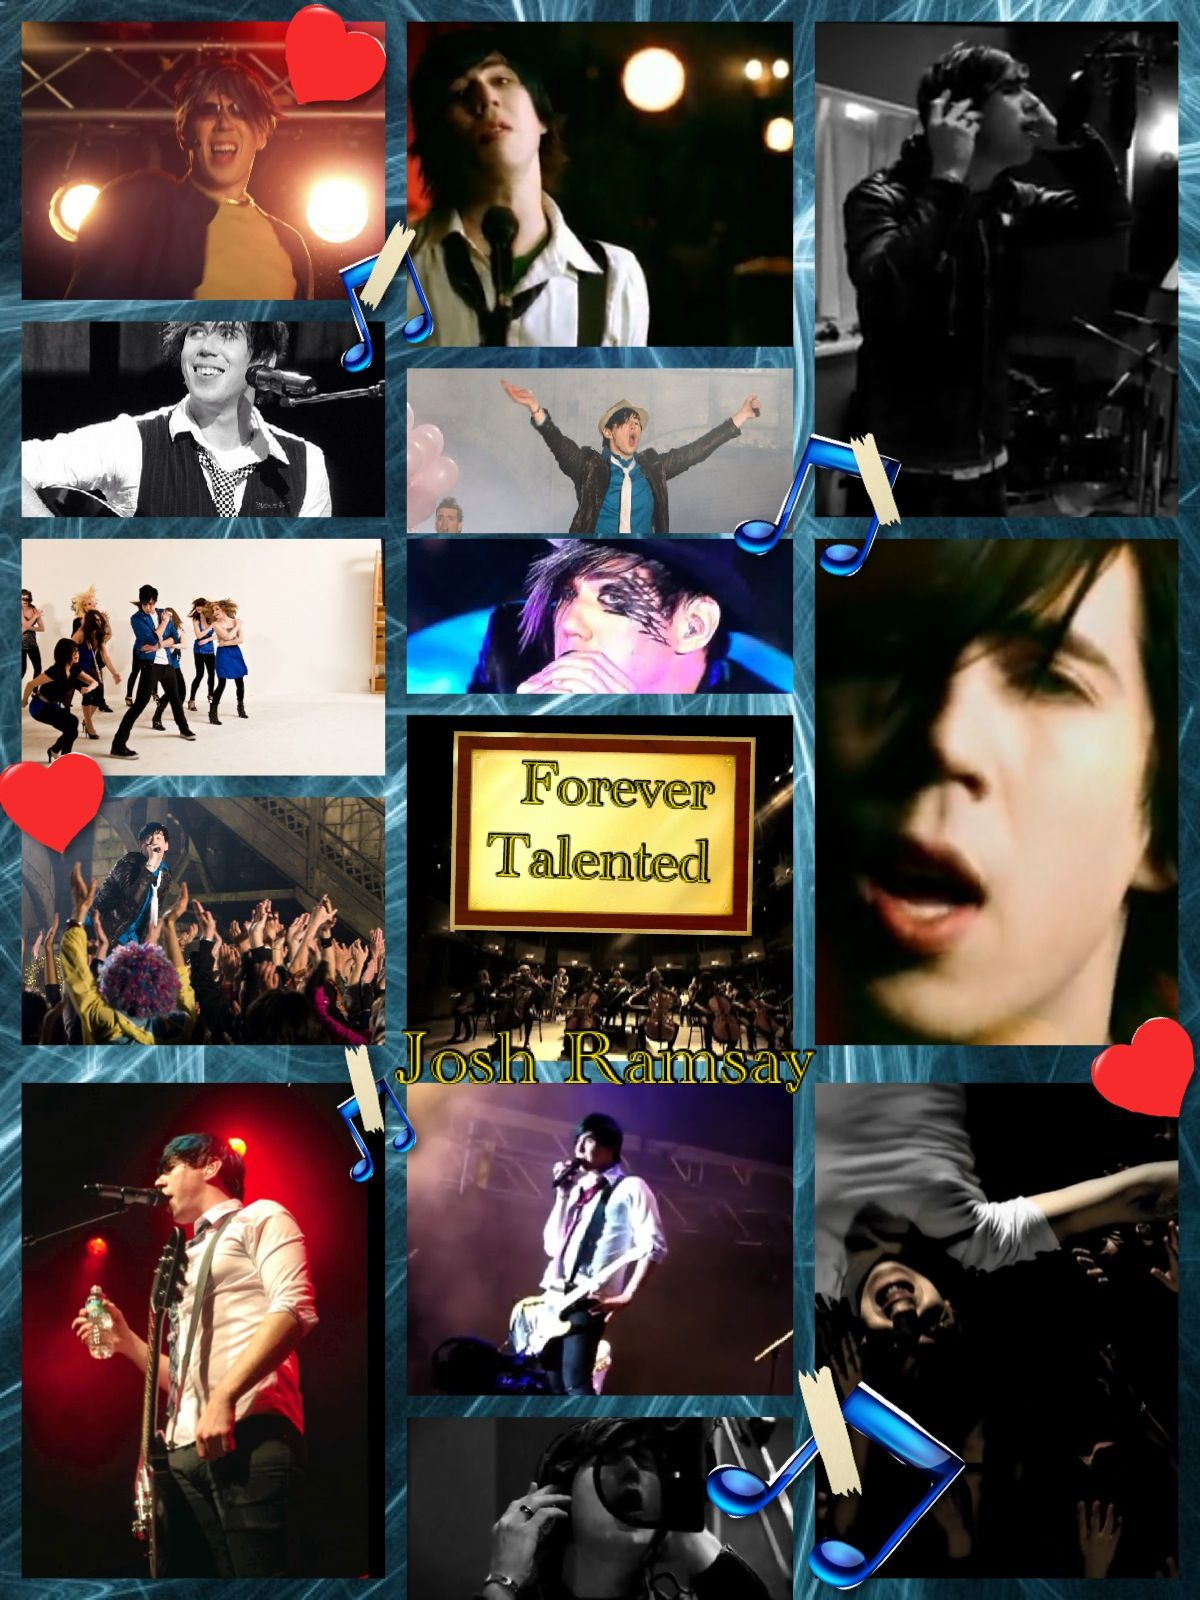 Forever talented. My Tribute to Josh Ramsay